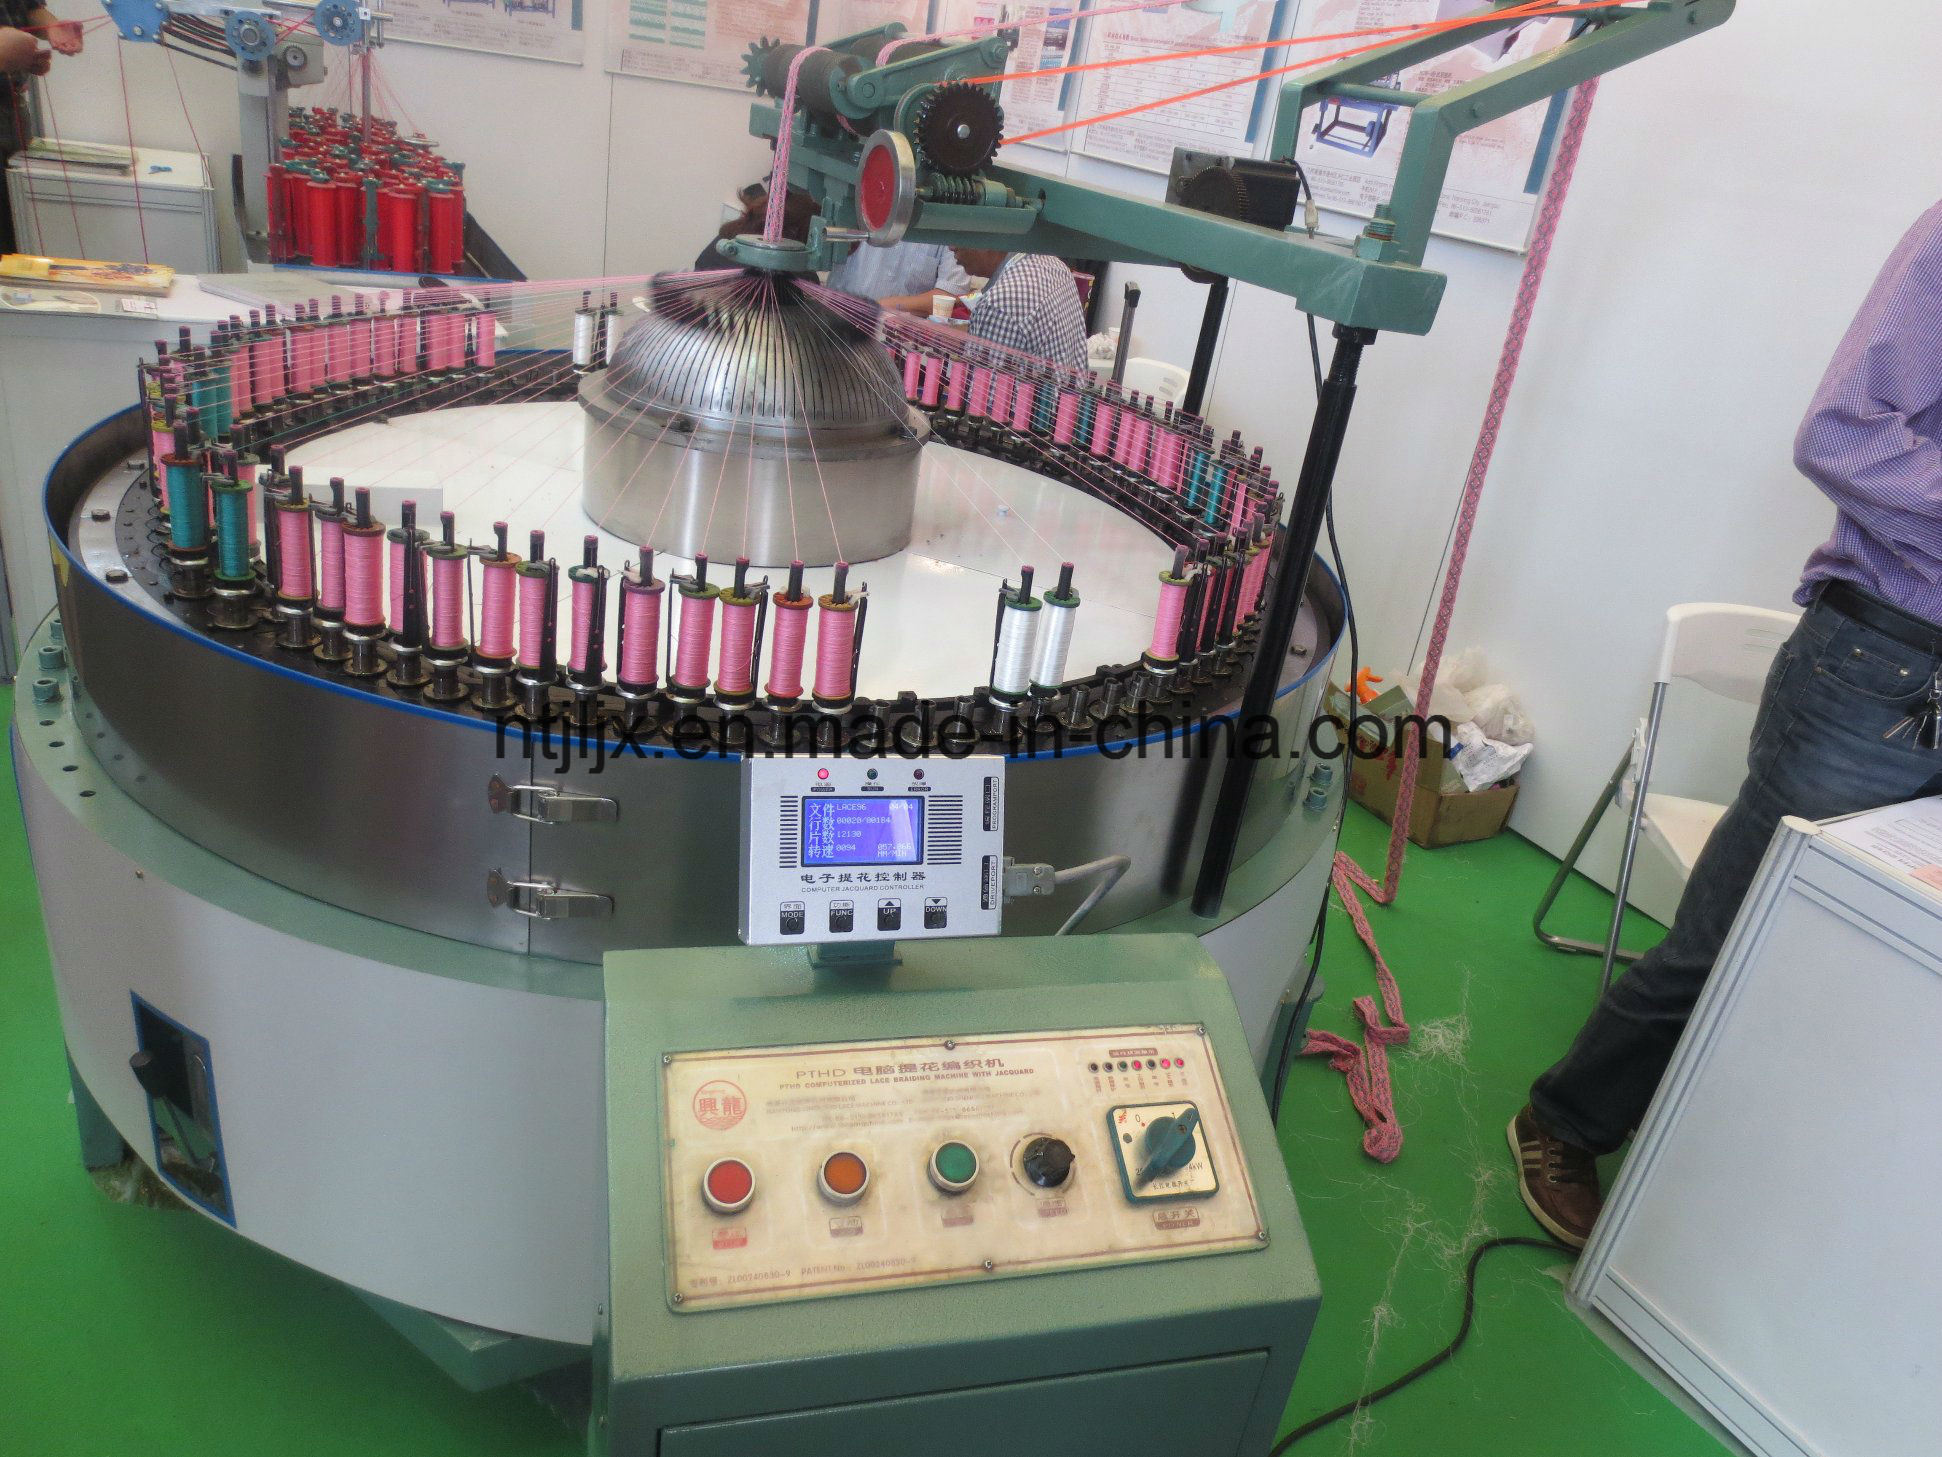 Pthd-96 Computerized Lace Braiding Machine